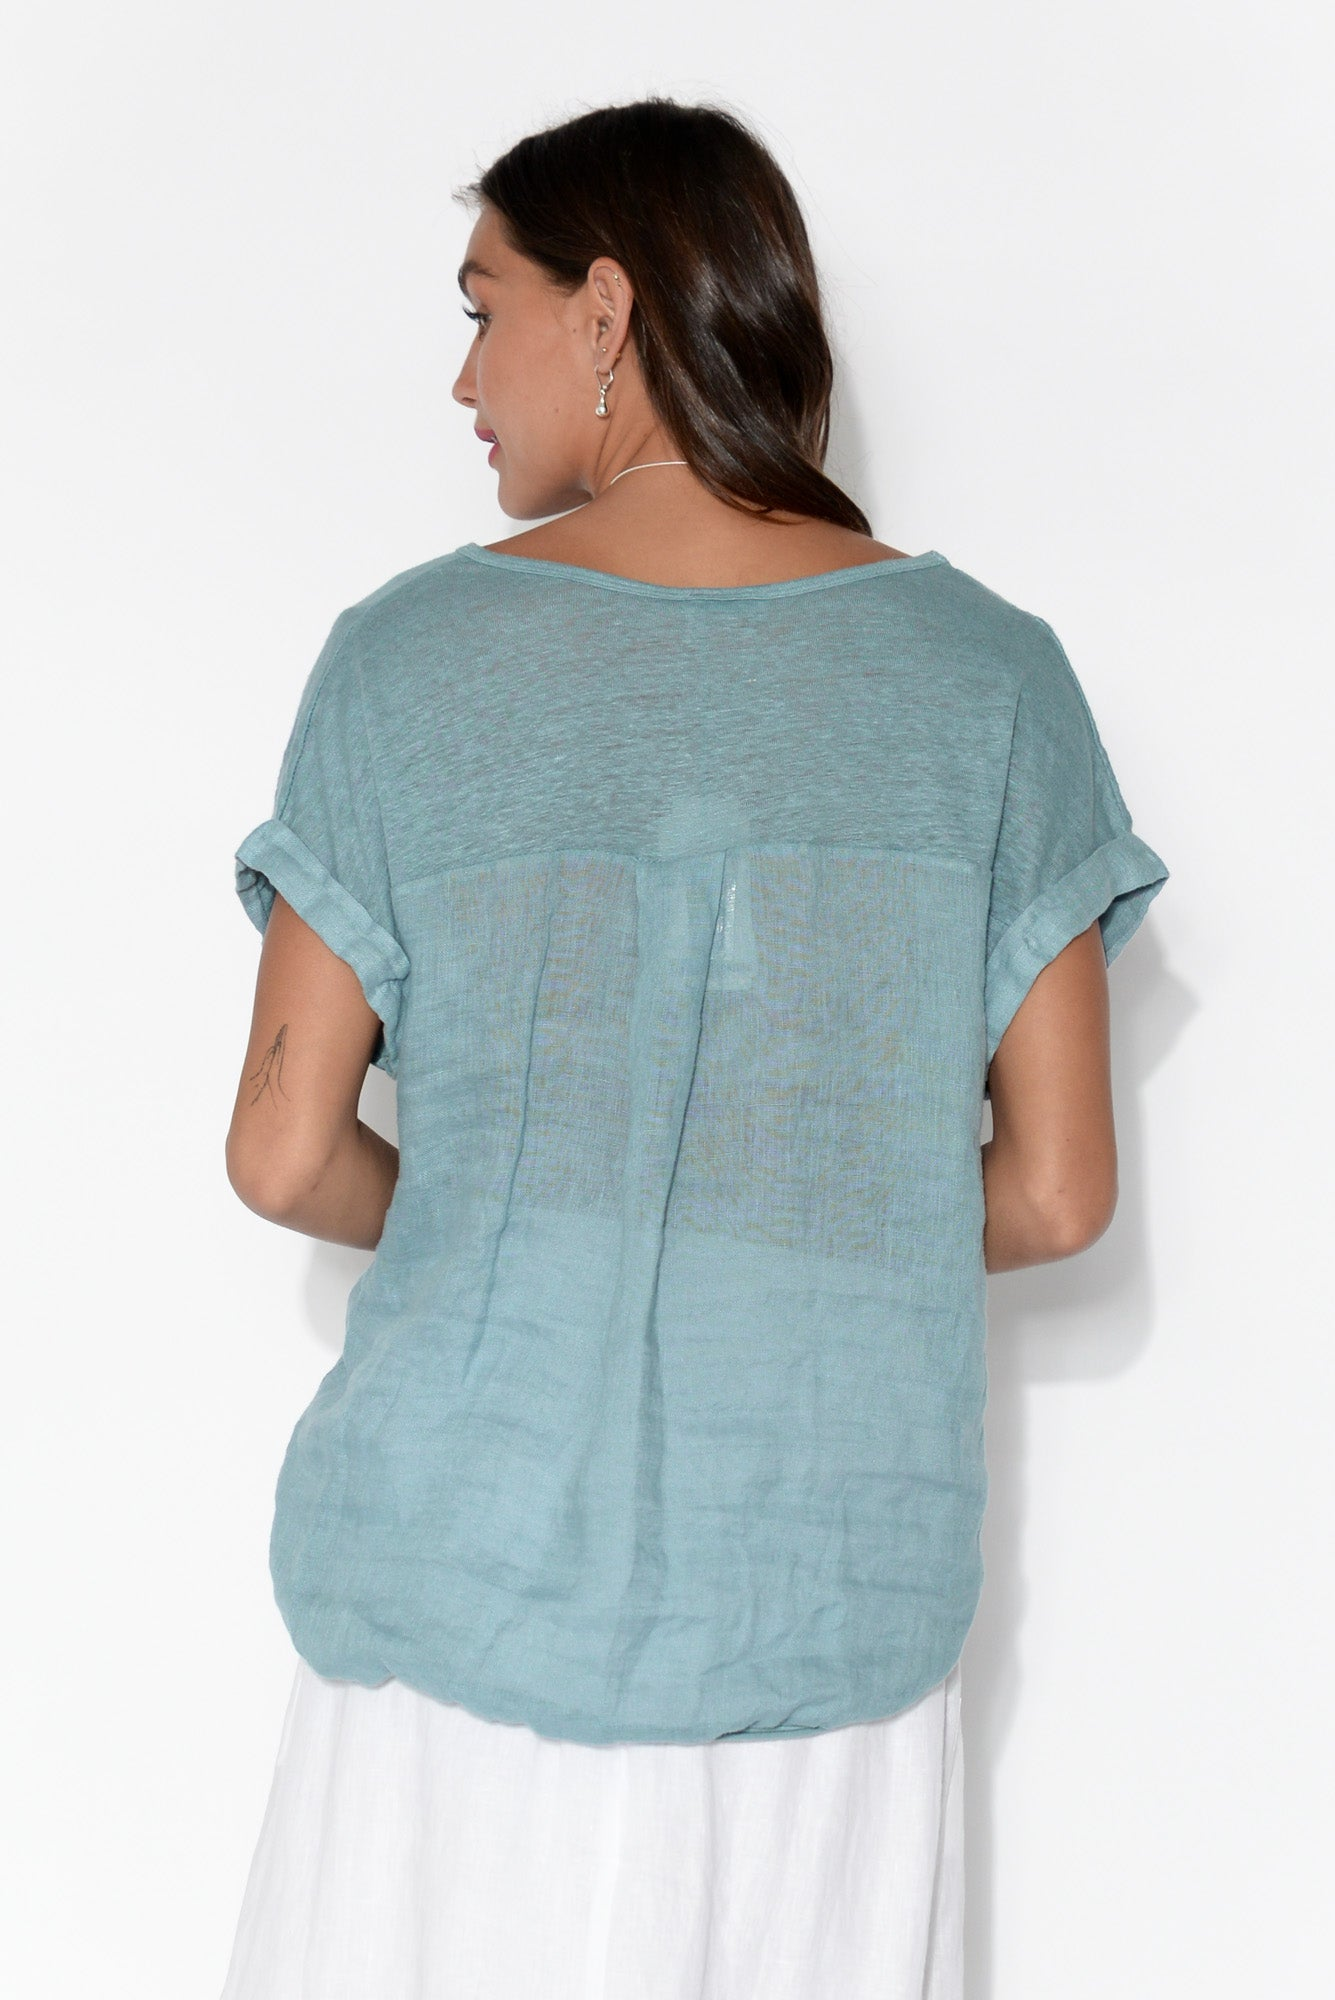 Effie Light Blue Linen Tee